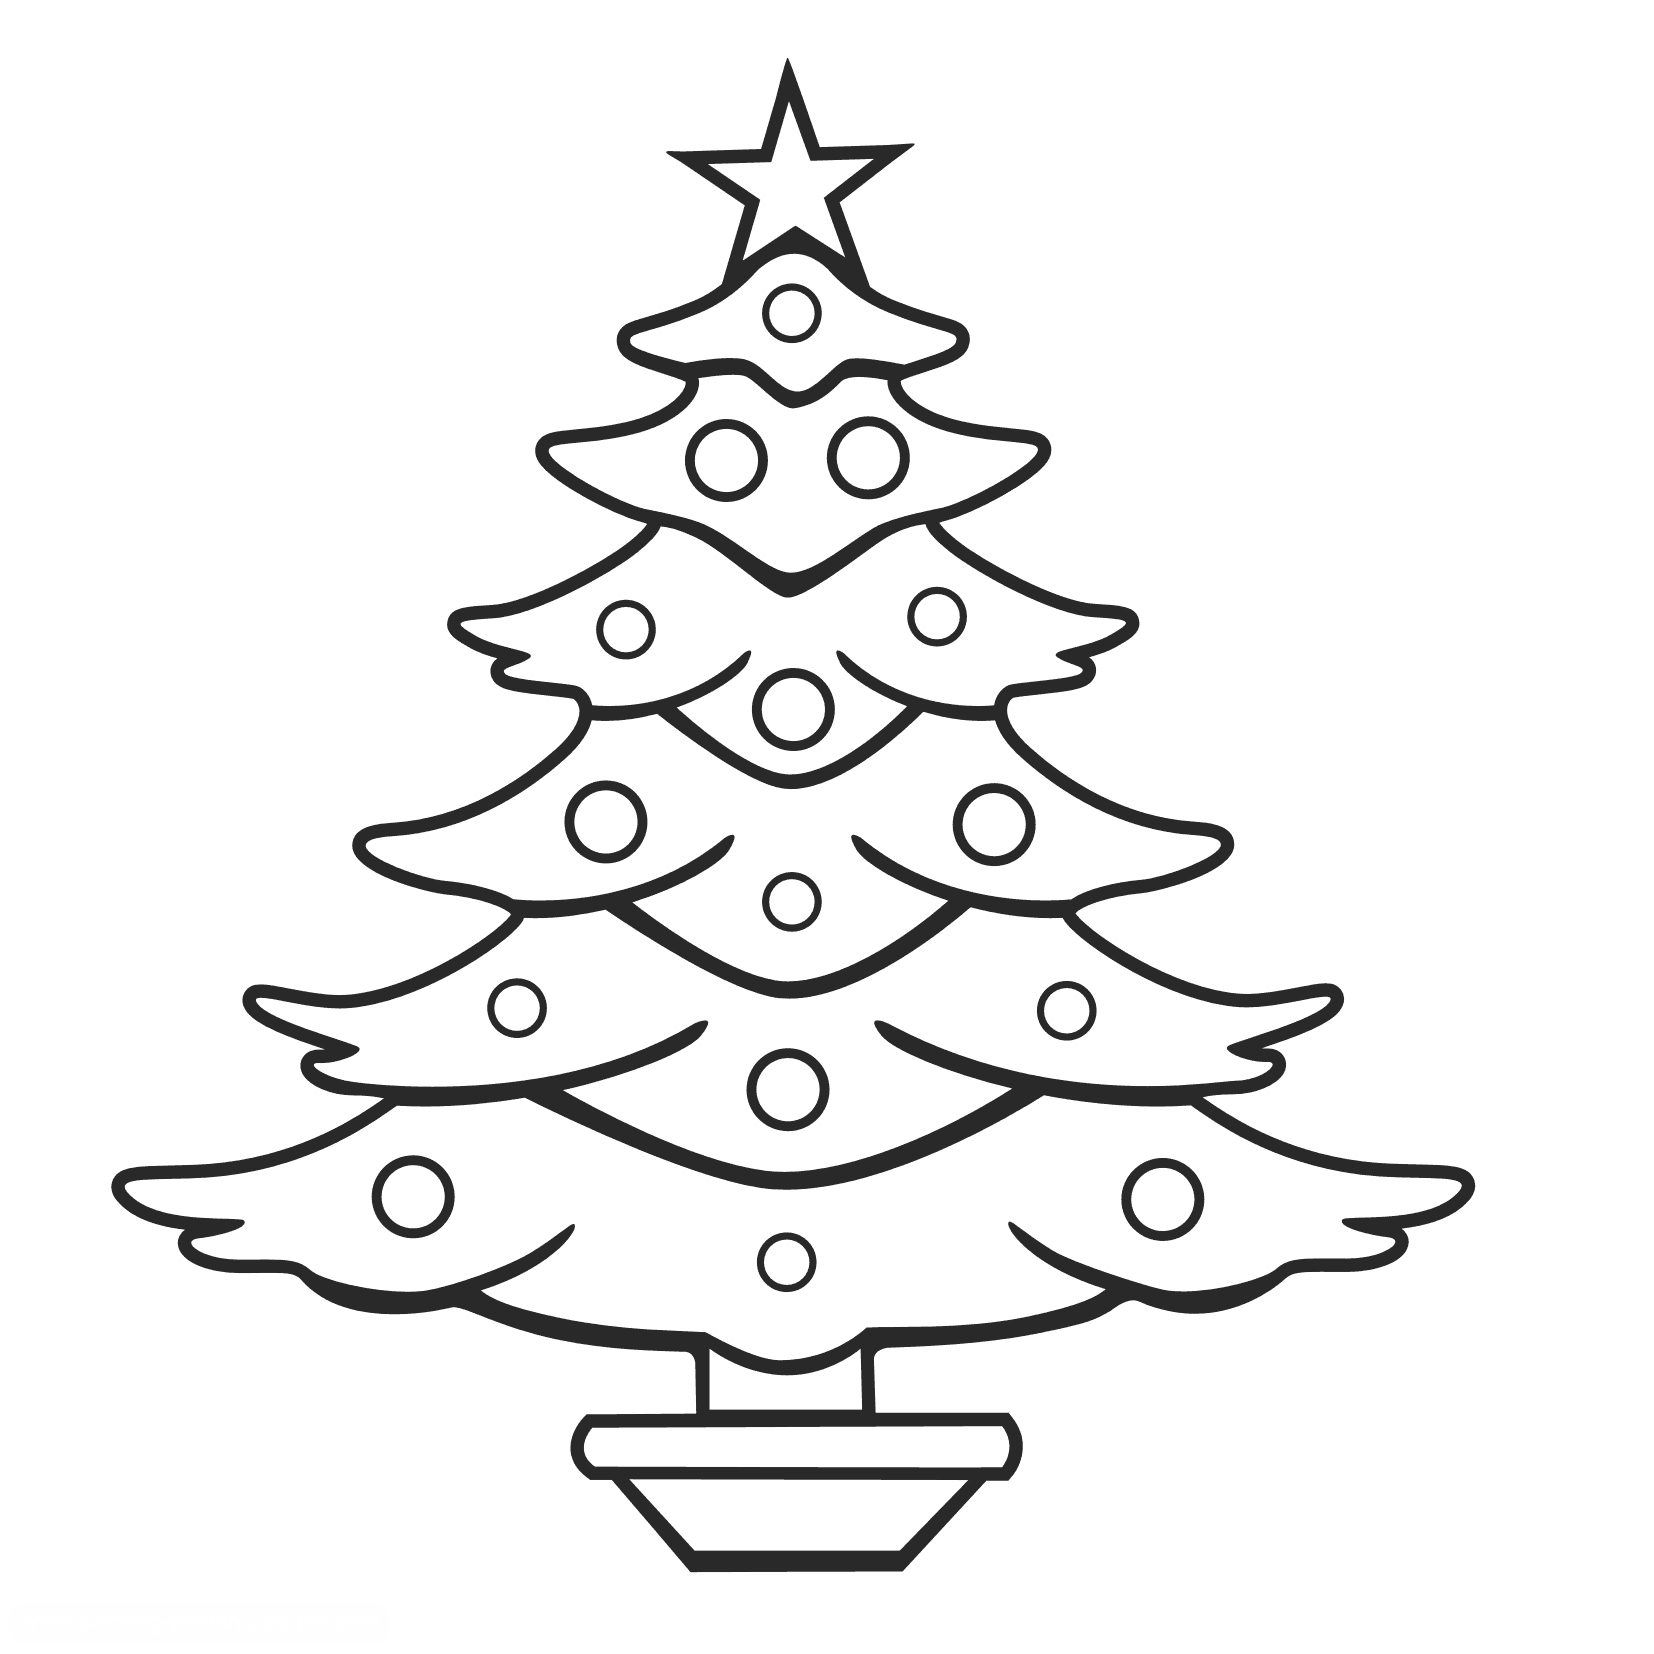 coloring picture tree tree coloring pages the sun flower pages coloring picture tree